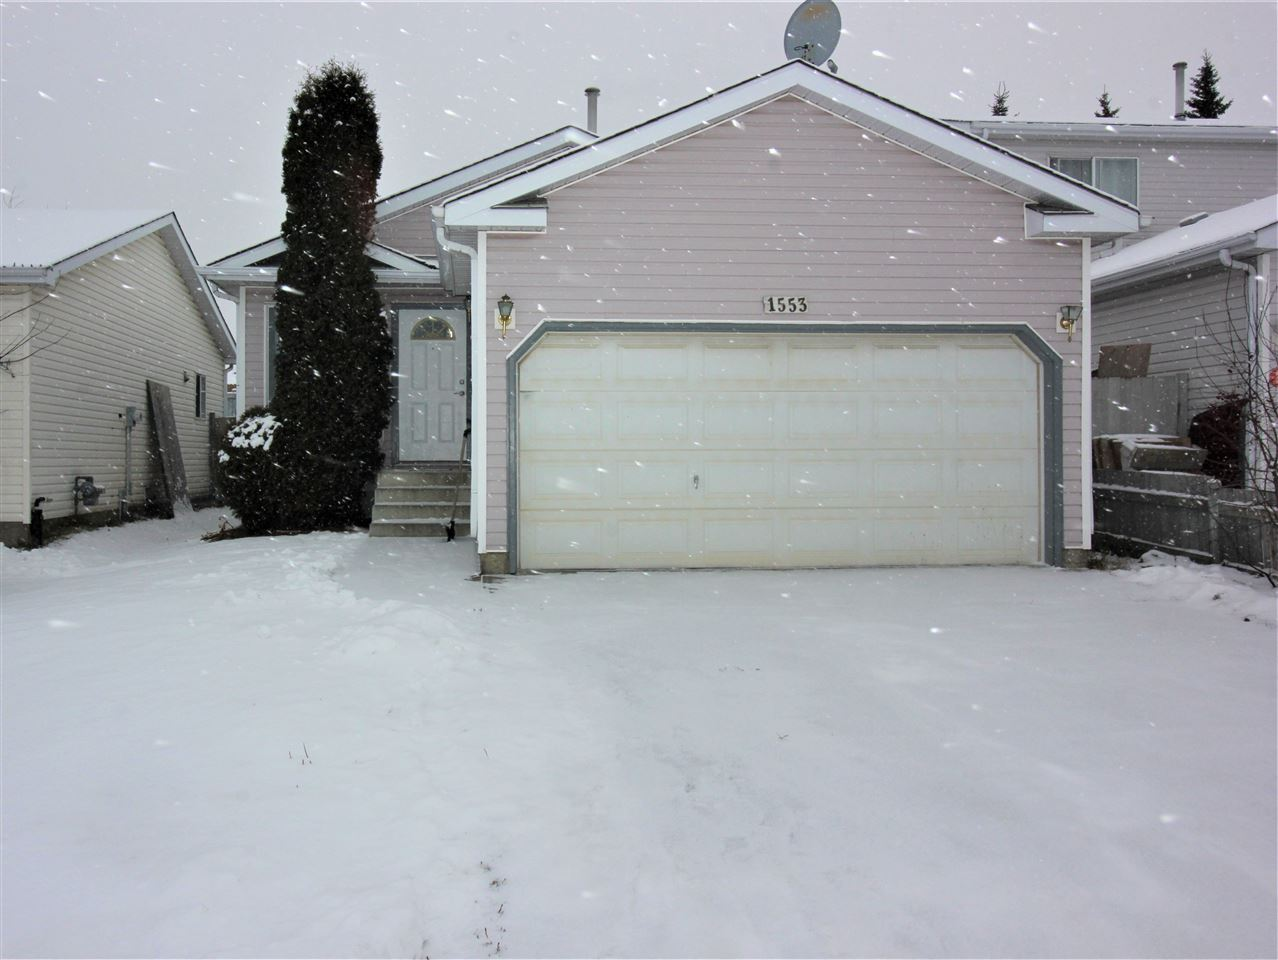 Cul-de-sac living at its finest in Crawford Plains area minutes away from the Anthony Henday and all amenities. This is a great opportunity for first time home buyers or people looking to acquire another revenue property. With 4 bedrooms total, 3 up and 1 down, 2.5 baths WHY WAIT? Entering the home, you are greeted by a spacious front entrance/living room with newer laminate click flooring a large kitchen with 3 appliances and eat-in dining room. Just down the hall is 3 bedrooms a 4pc bathroom and 2 pc ensuite in the master bedroom. Downstairs is fully finished with a 4th bedroom, 3 pc bathroom and massive family room to celebrate Christmas with the whole family?. There?s even enough room for the in-laws??